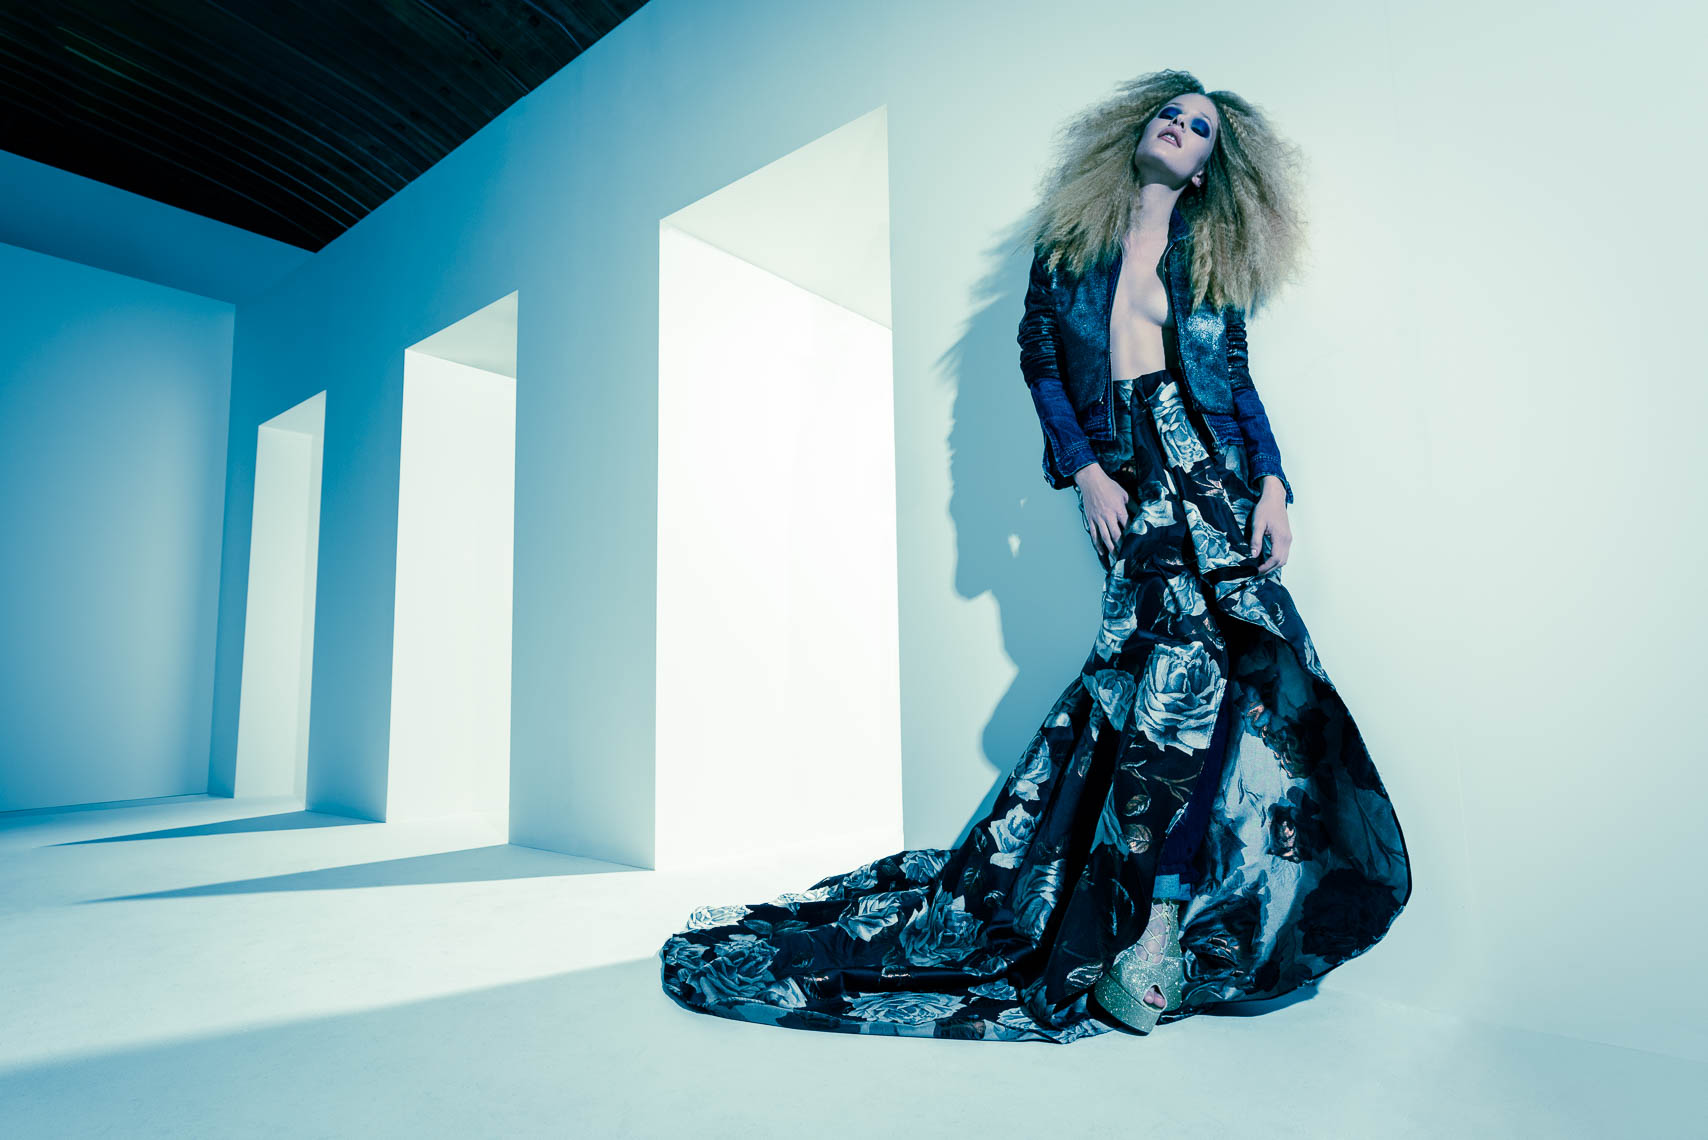 Vulkan Magazine editorial fashion image in blue